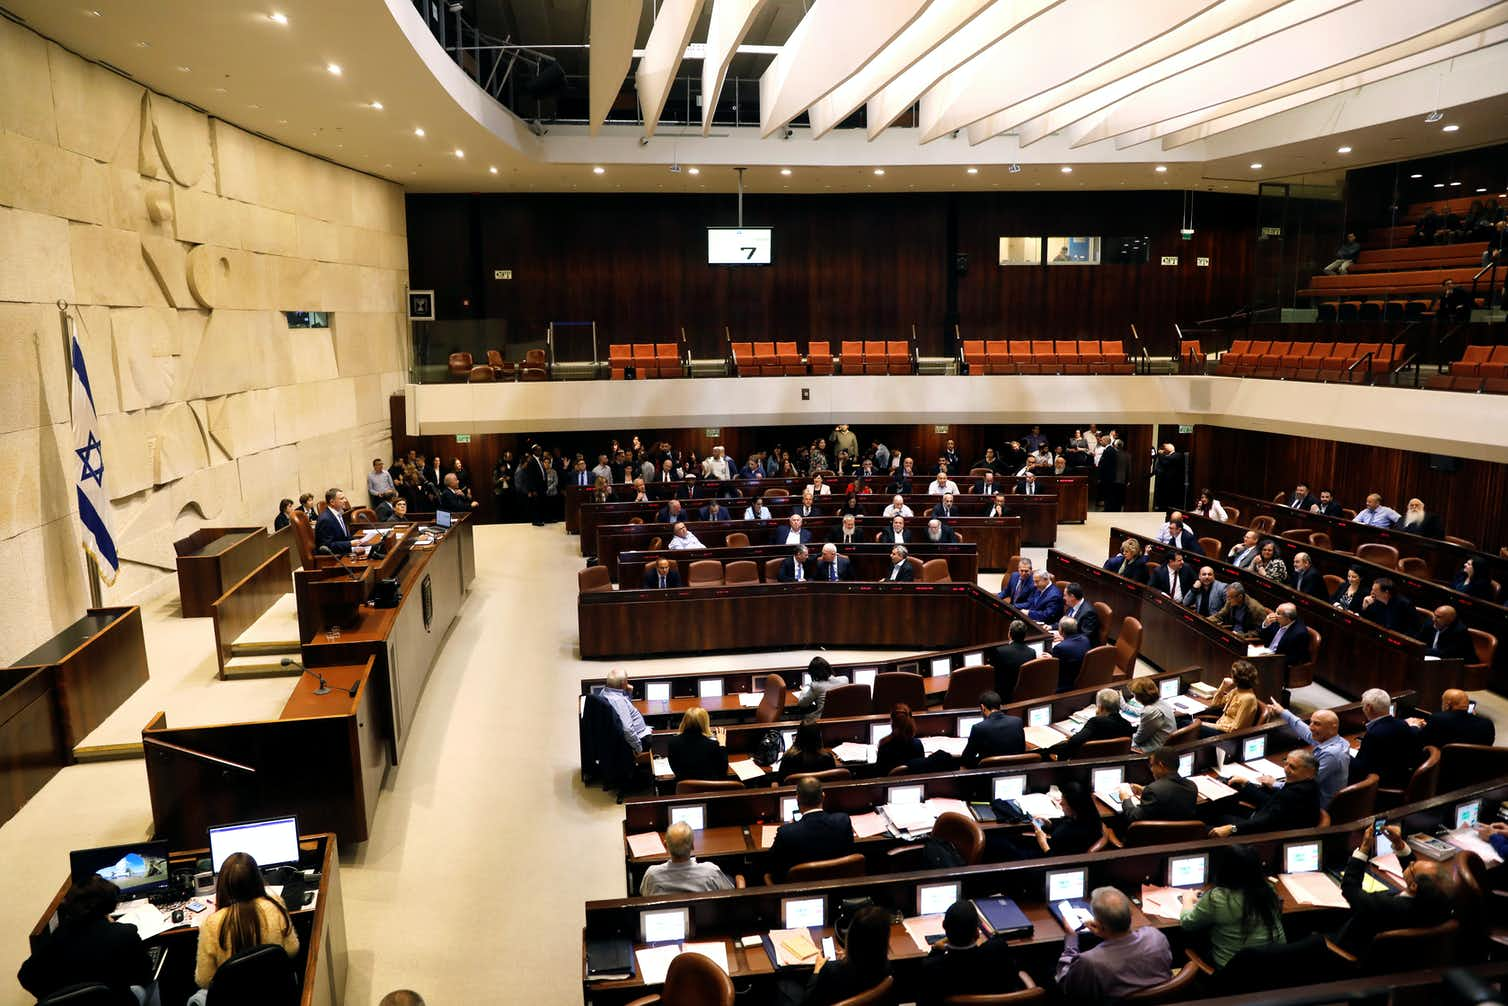 Control of Israel's government, the Knesset, seen here, is at stake in the election. Photo credit: Ronen Zvulun/Reuters